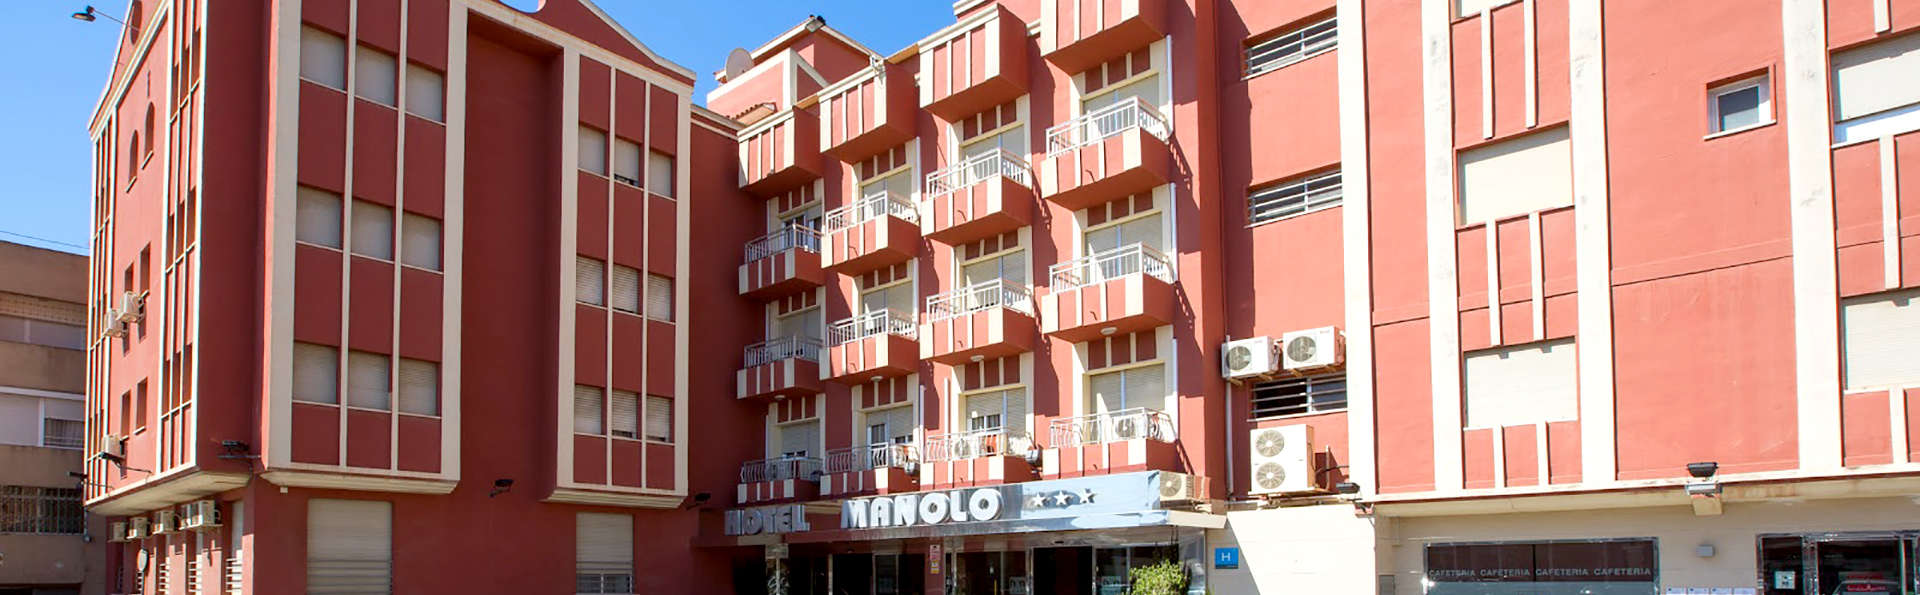 Hotel Manolo - Edit_Front.jpg